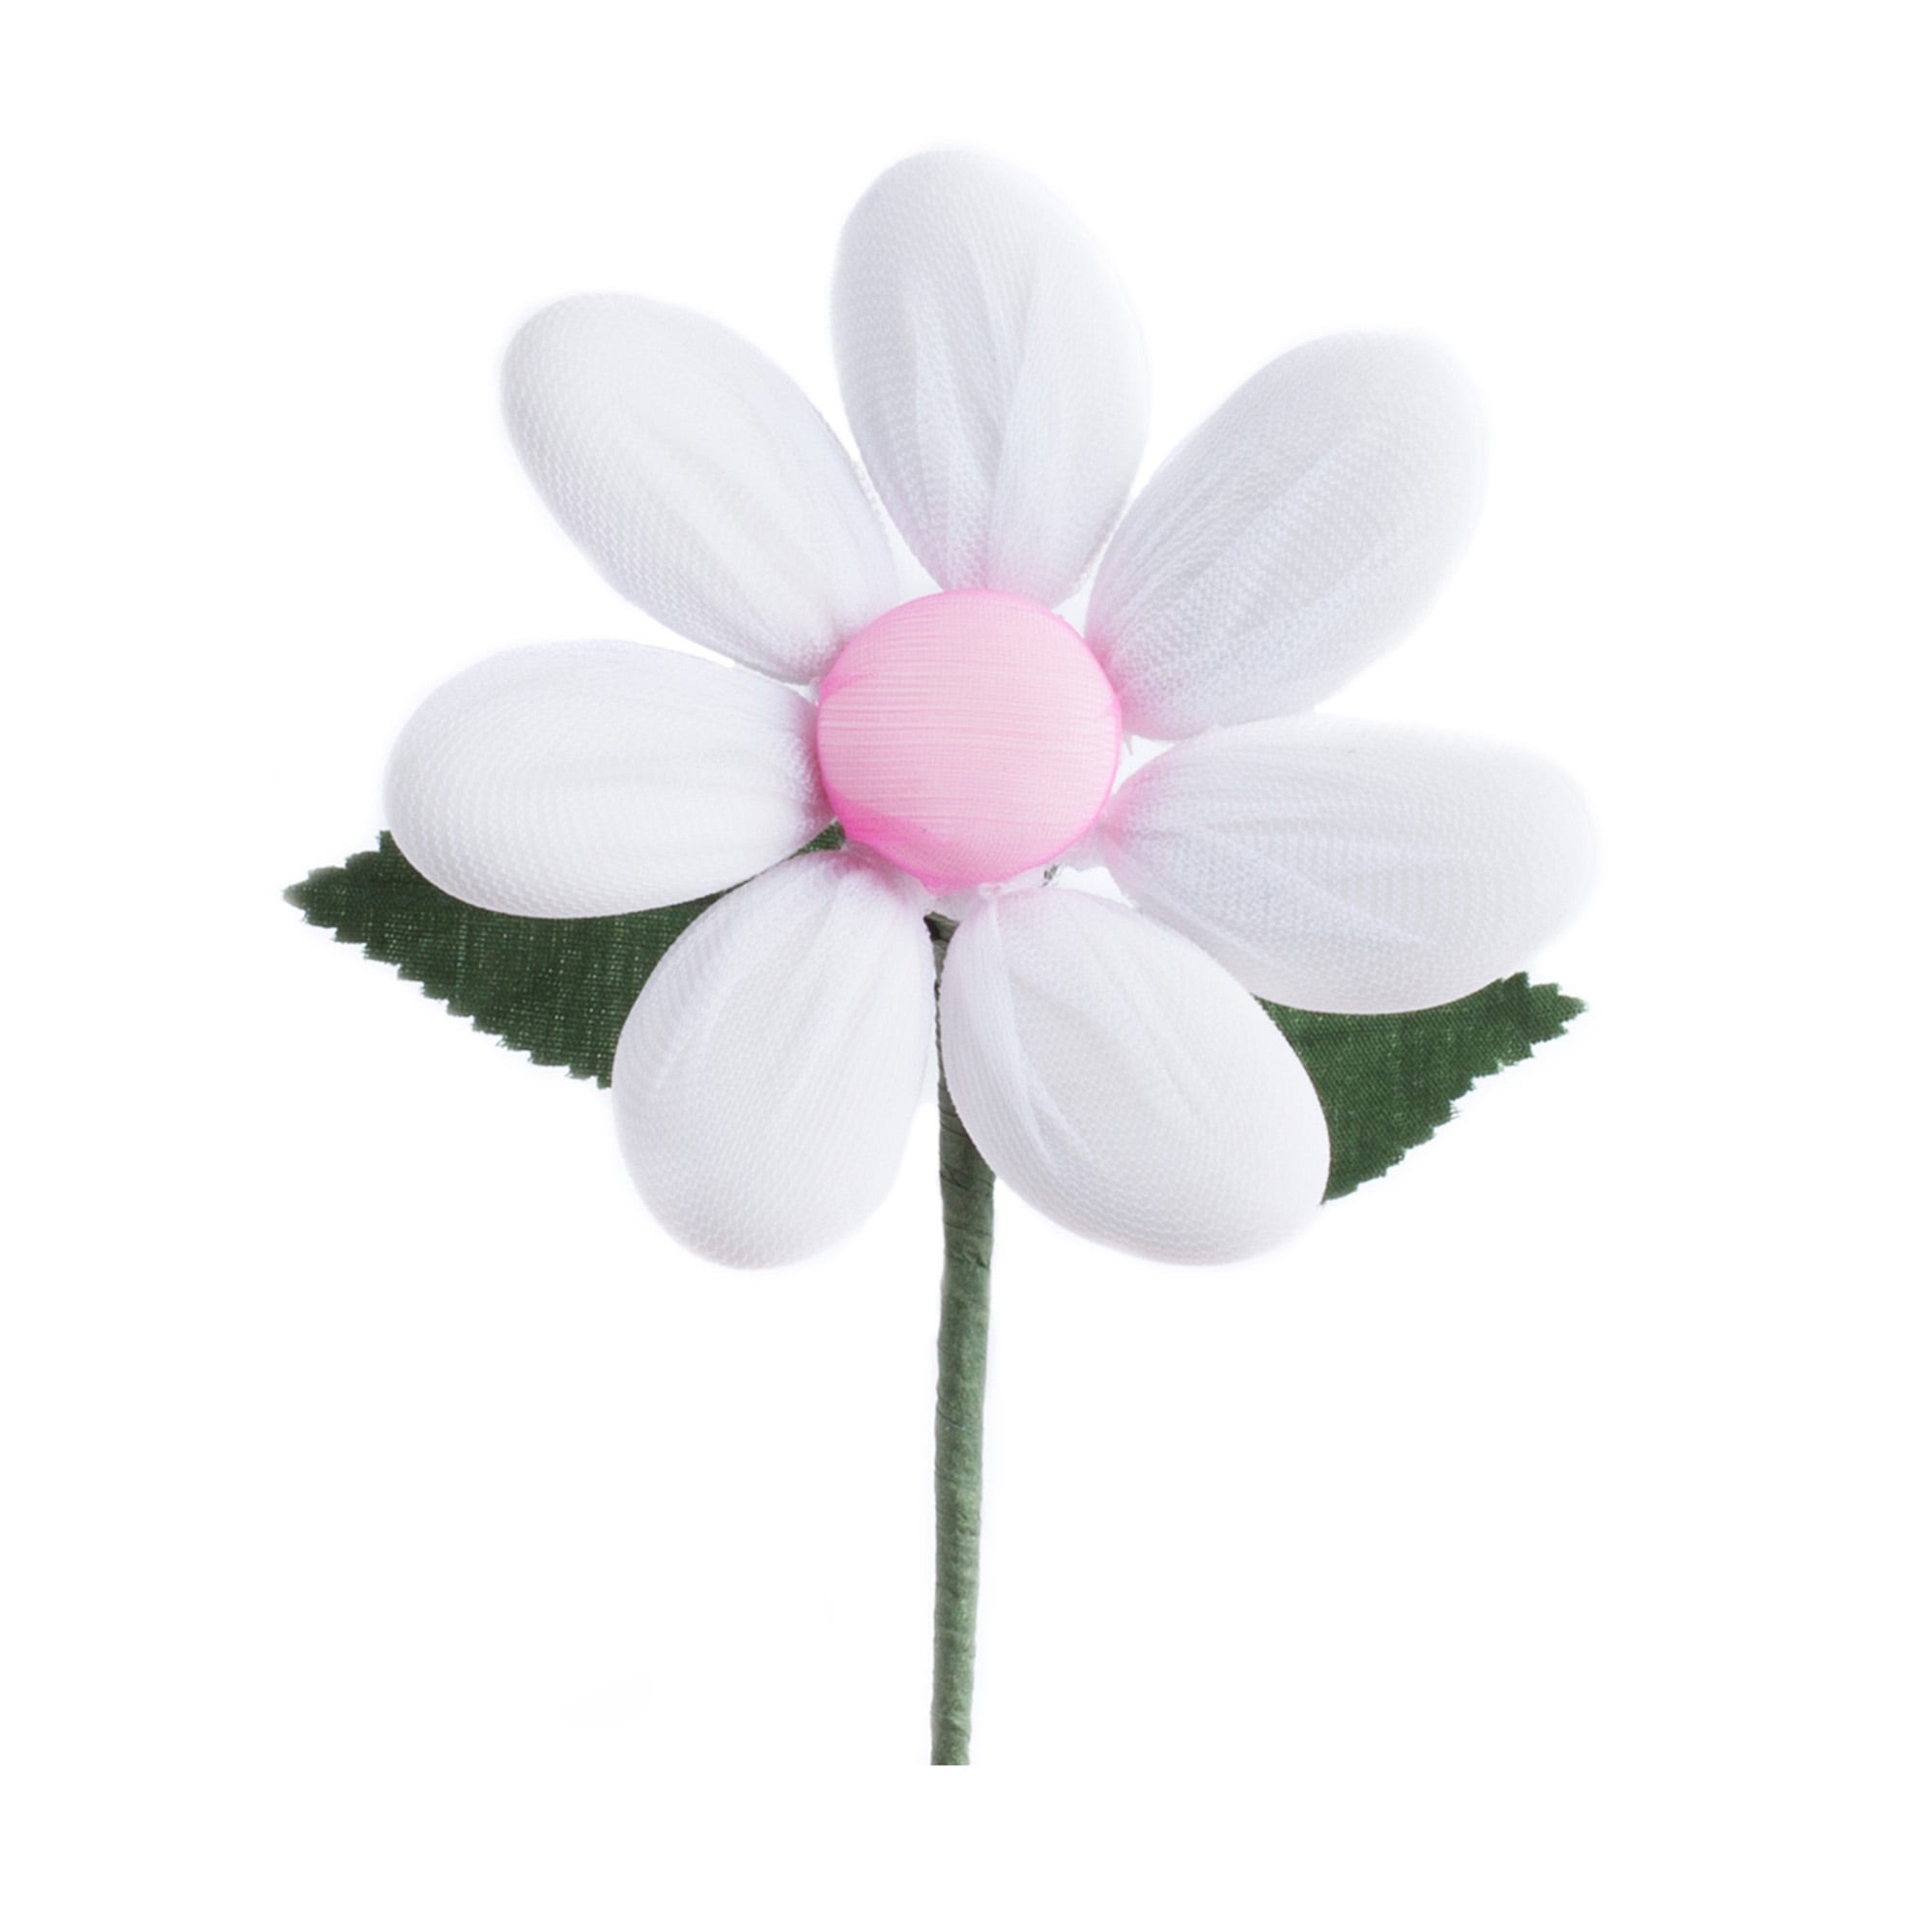 Candy Flowers - White Daisy